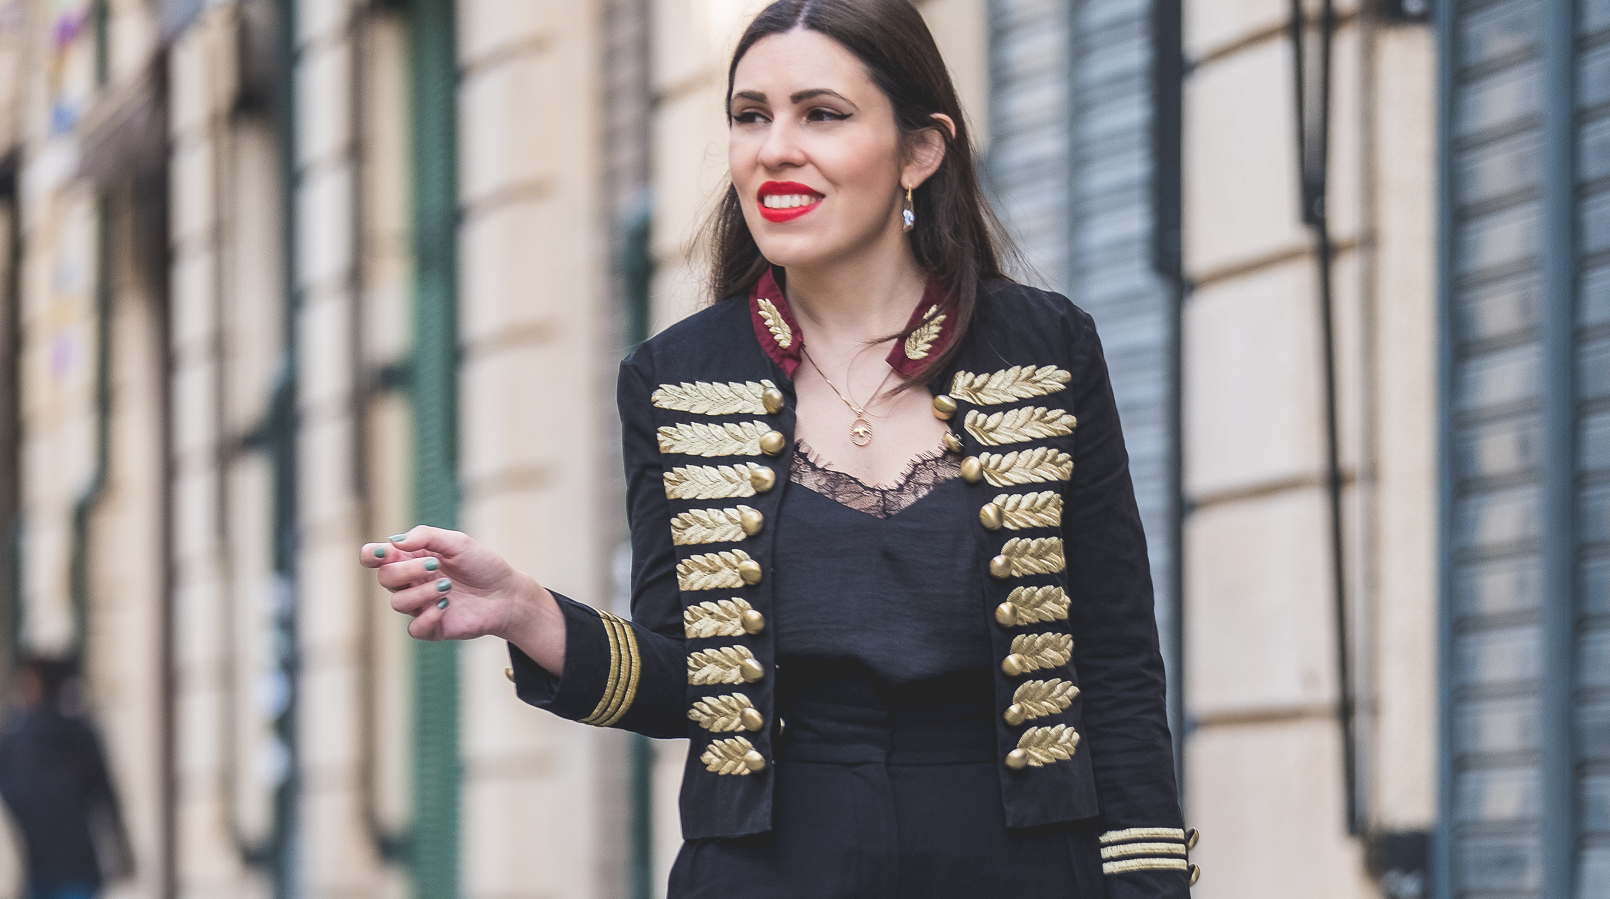 Le Fashionaire military gold embroidered black red minusey jacket swallow gold cinco necklace satin black lace stradivarius top 9320F EN military gold embroidered black red minusey jacket swallow gold cinco necklace satin black lace stradivarius top 9320F EN